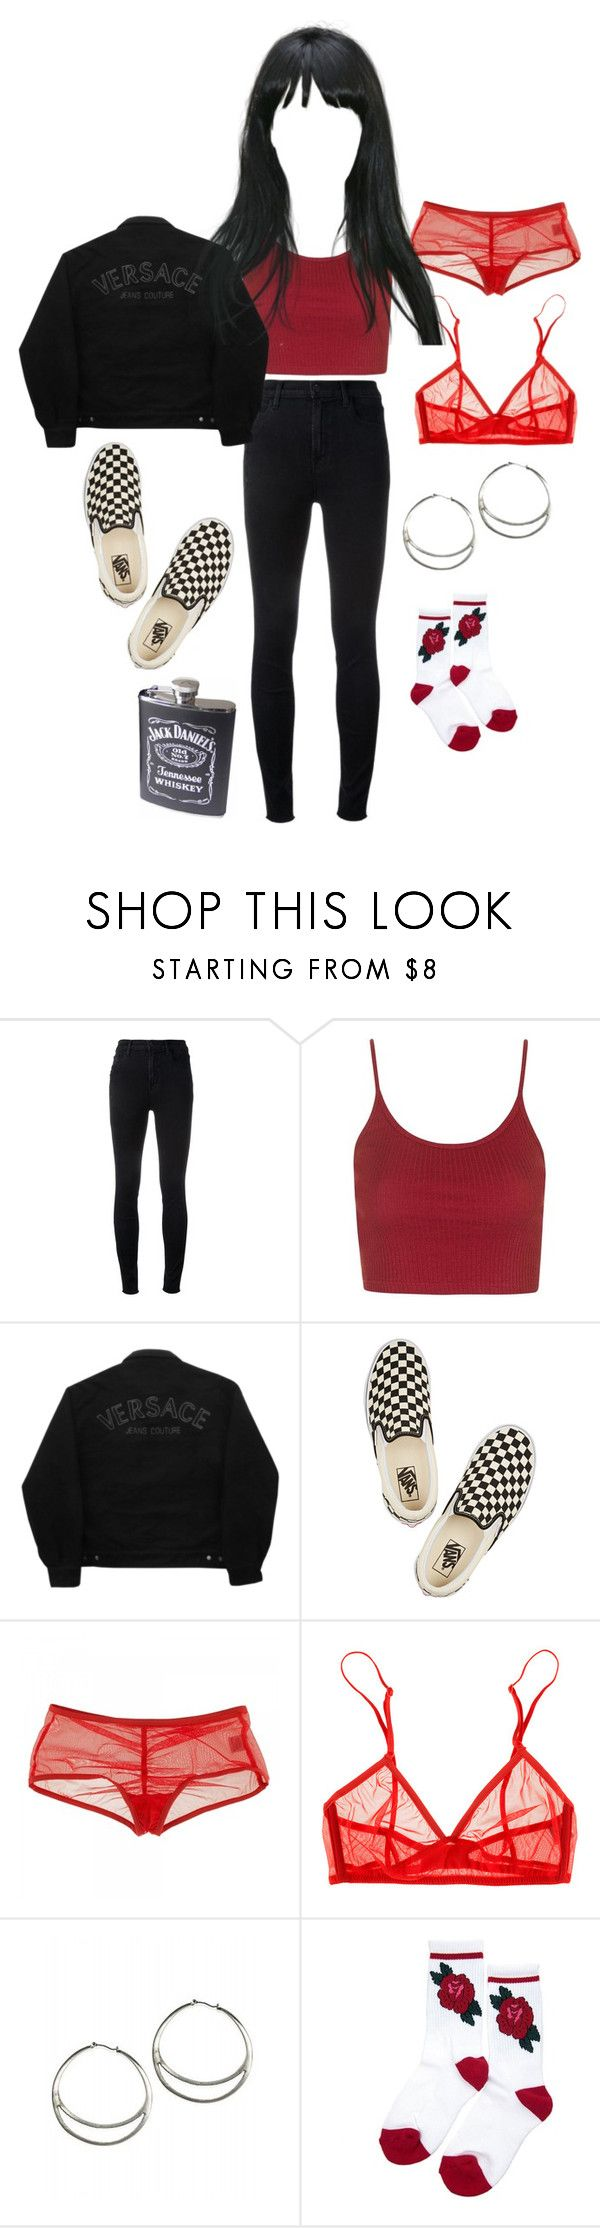 """""""Caroline"""" by c-ookie ❤ liked on Polyvore featuring J Brand, Topshop, Versace Jeans Couture, Vans and Only Hearts"""